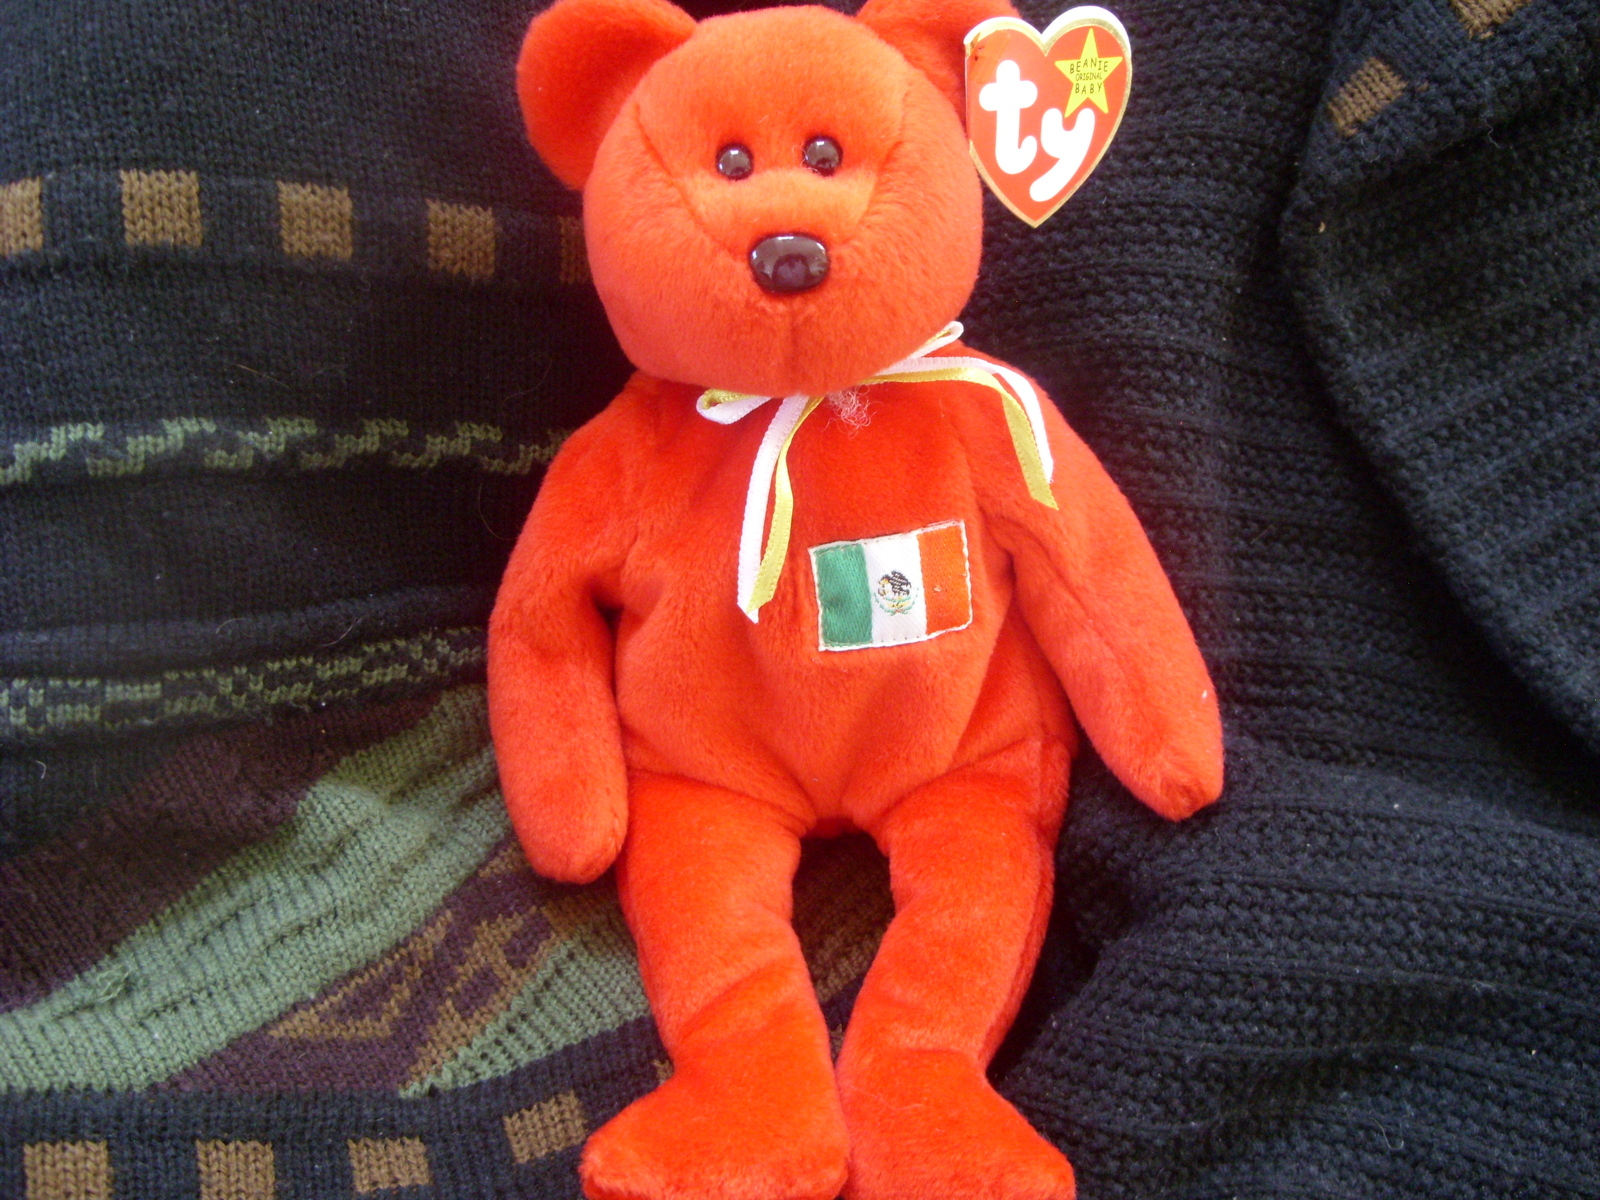 9440452335e TY Beanie Baby Osito Mexican Bear 5th Gen and 10 similar items. Sn851346